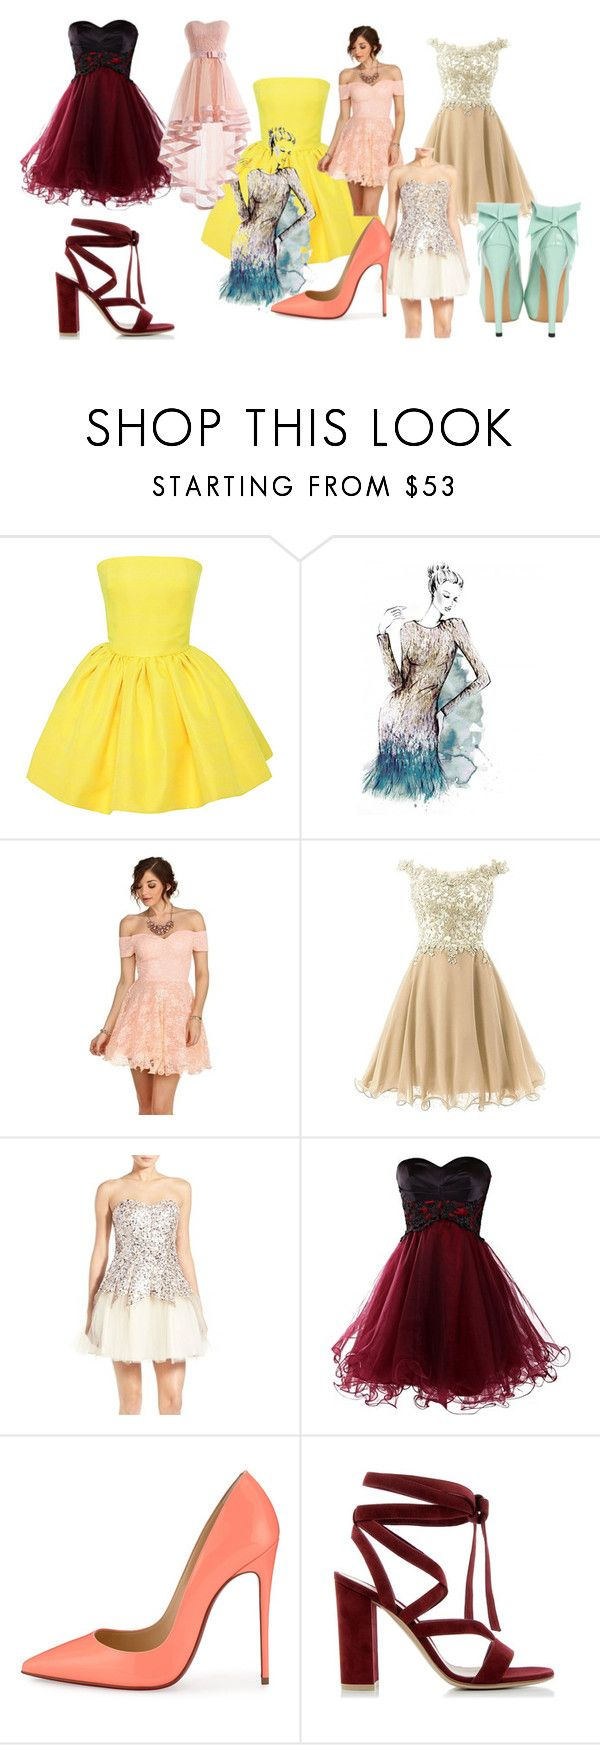 """dress"" by rismasansella on Polyvore featuring Martin Grant, Matthew Williamson, Steppin' Out, Christian Louboutin, Gianvito Rossi, women's clothing, women, female, woman and misses"